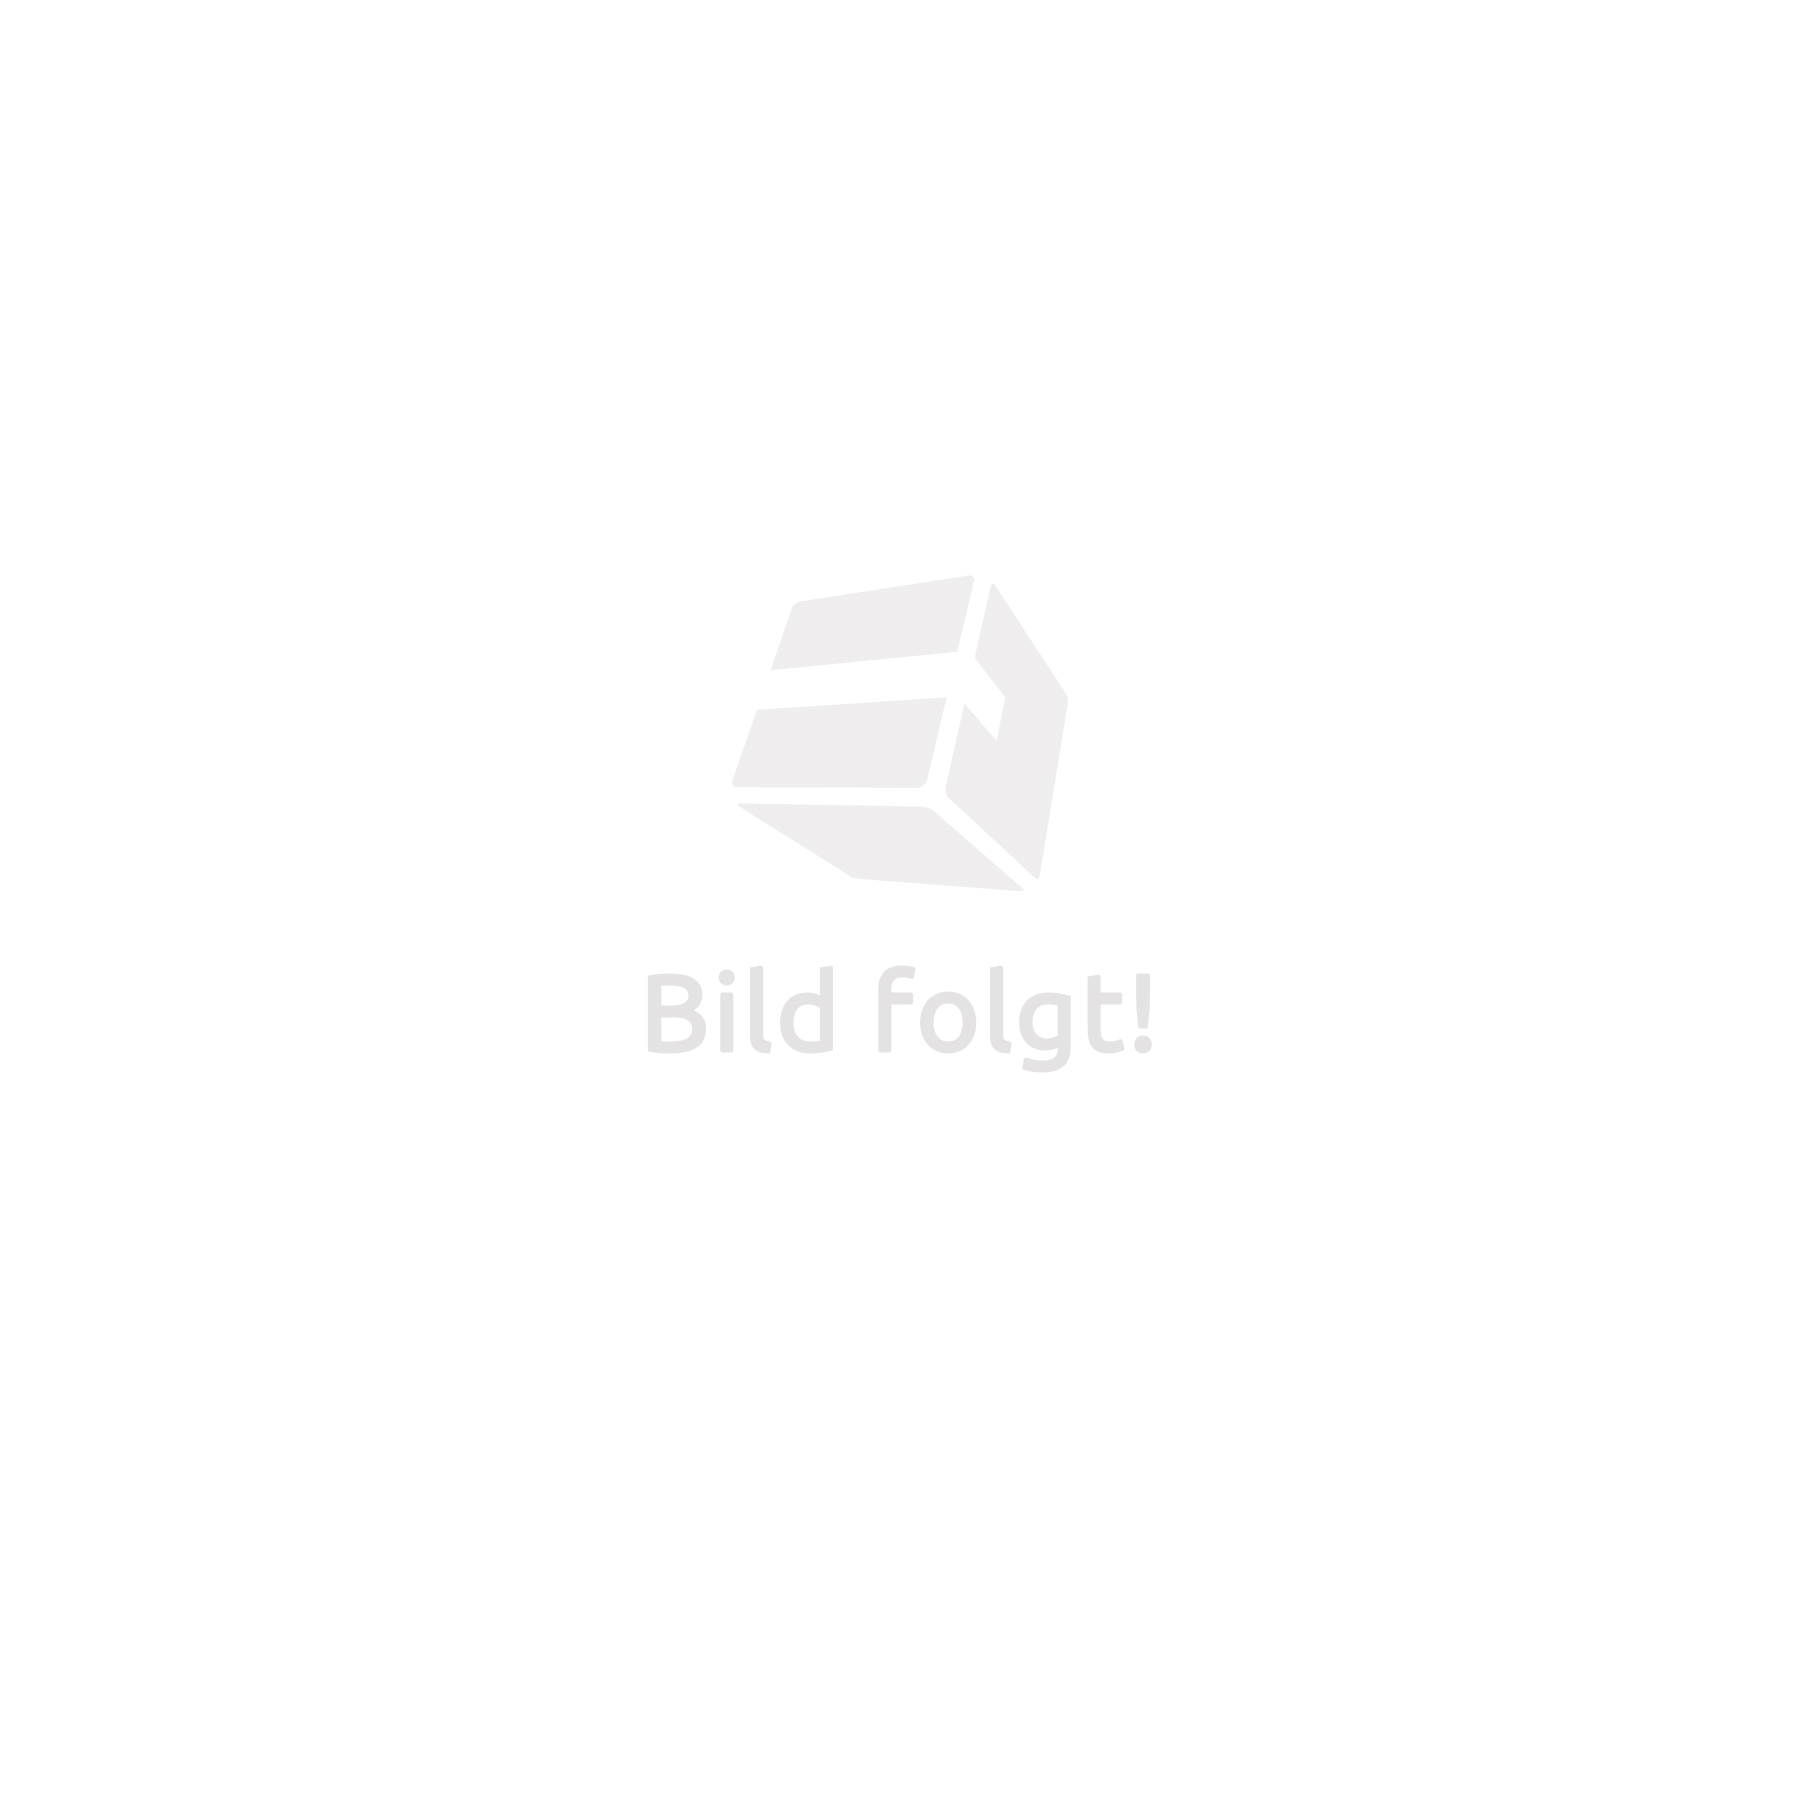 Table de massage Pliante 2 Zones Aluminium Portable + Housse beige